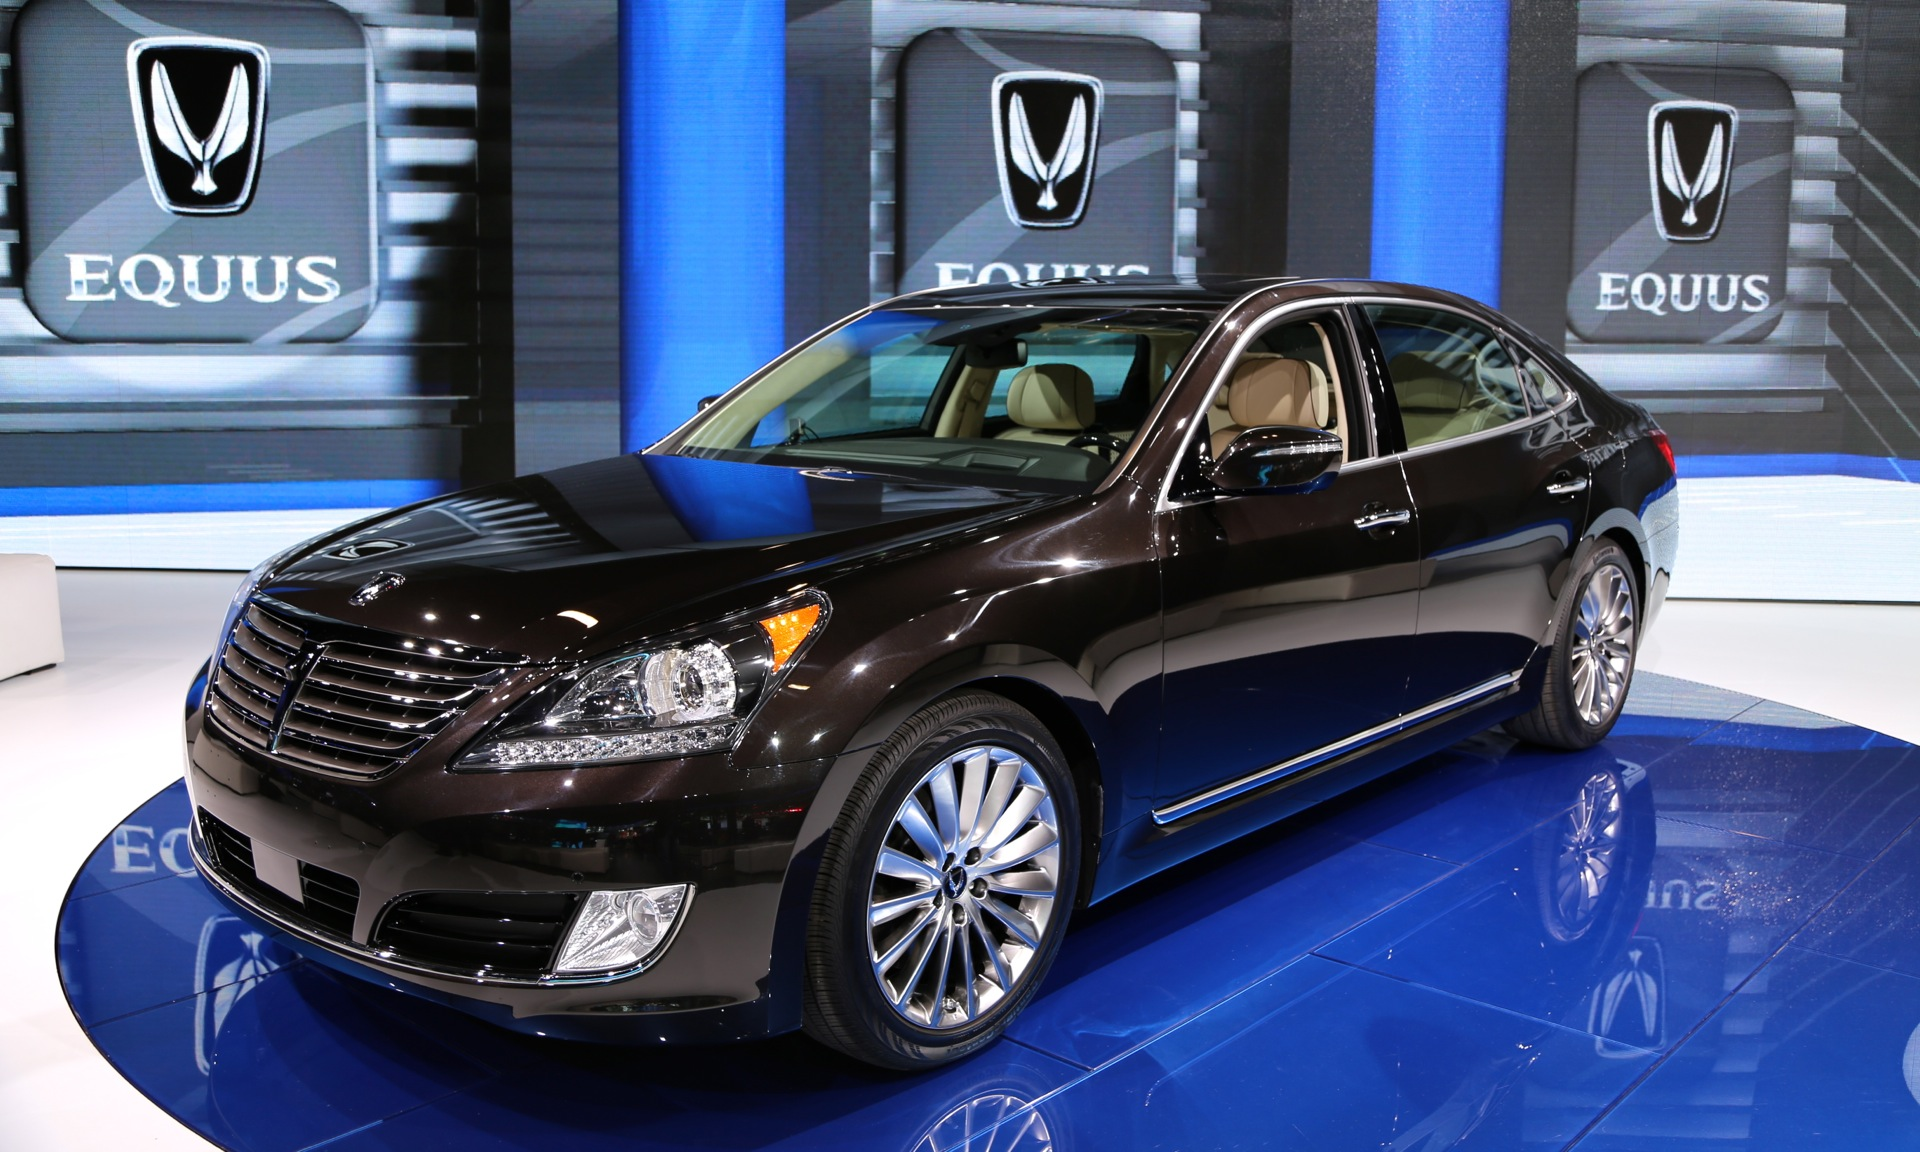 pertaining ultimate drive to first com motor indnets hyundai trend equus